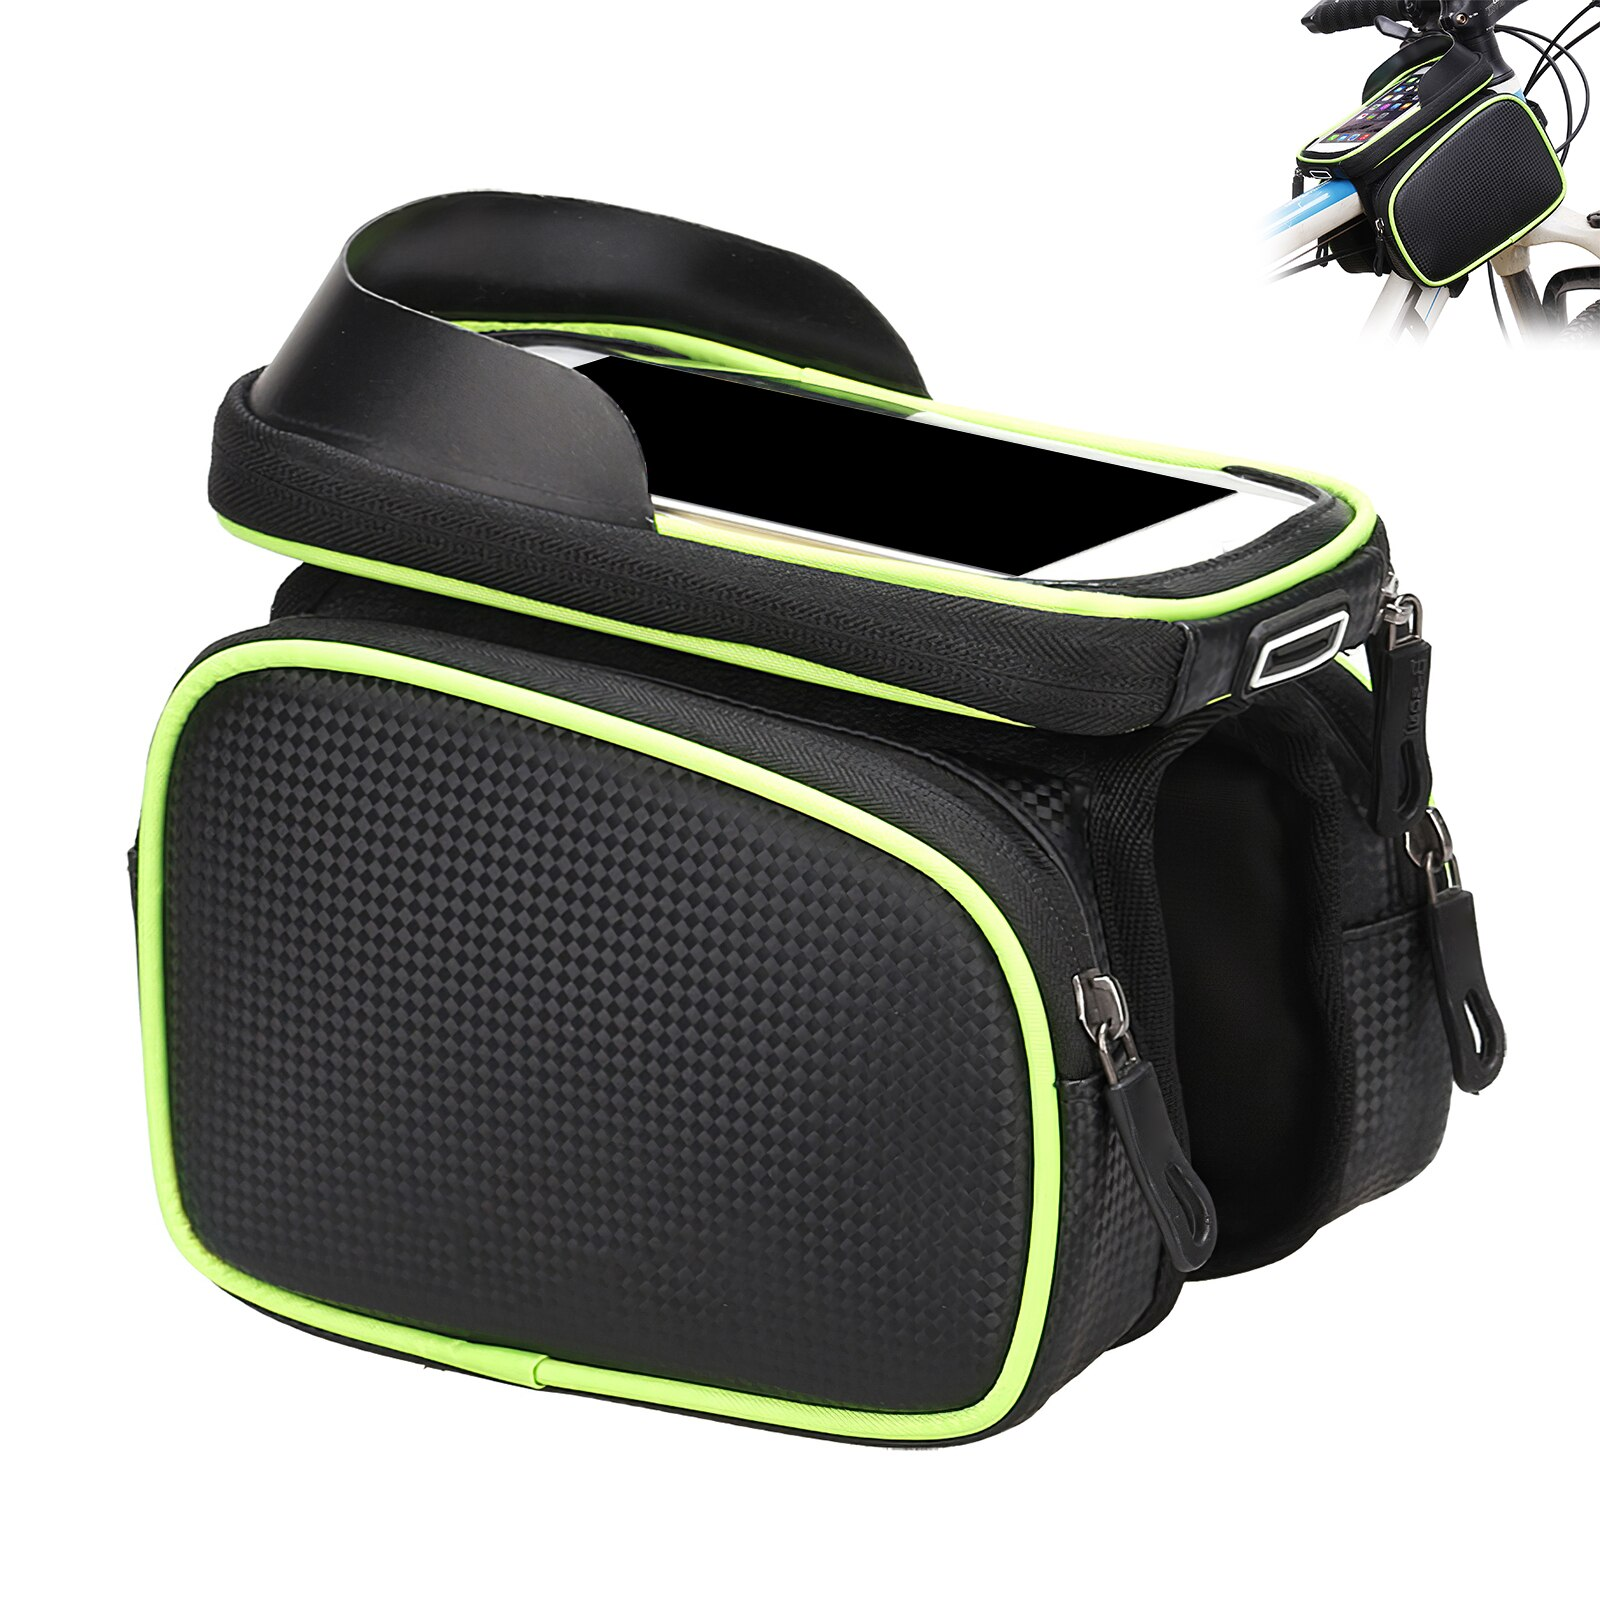 Bicycle Front Frame Bag Rainproof Bicycle Front Touch Screen Mobile Phone Bag Mountain Bike Top Tube Bag Bicycle Riding Bag bicycle front bag large capacity multi function front head bag folding bike electric car bag rainproof cover